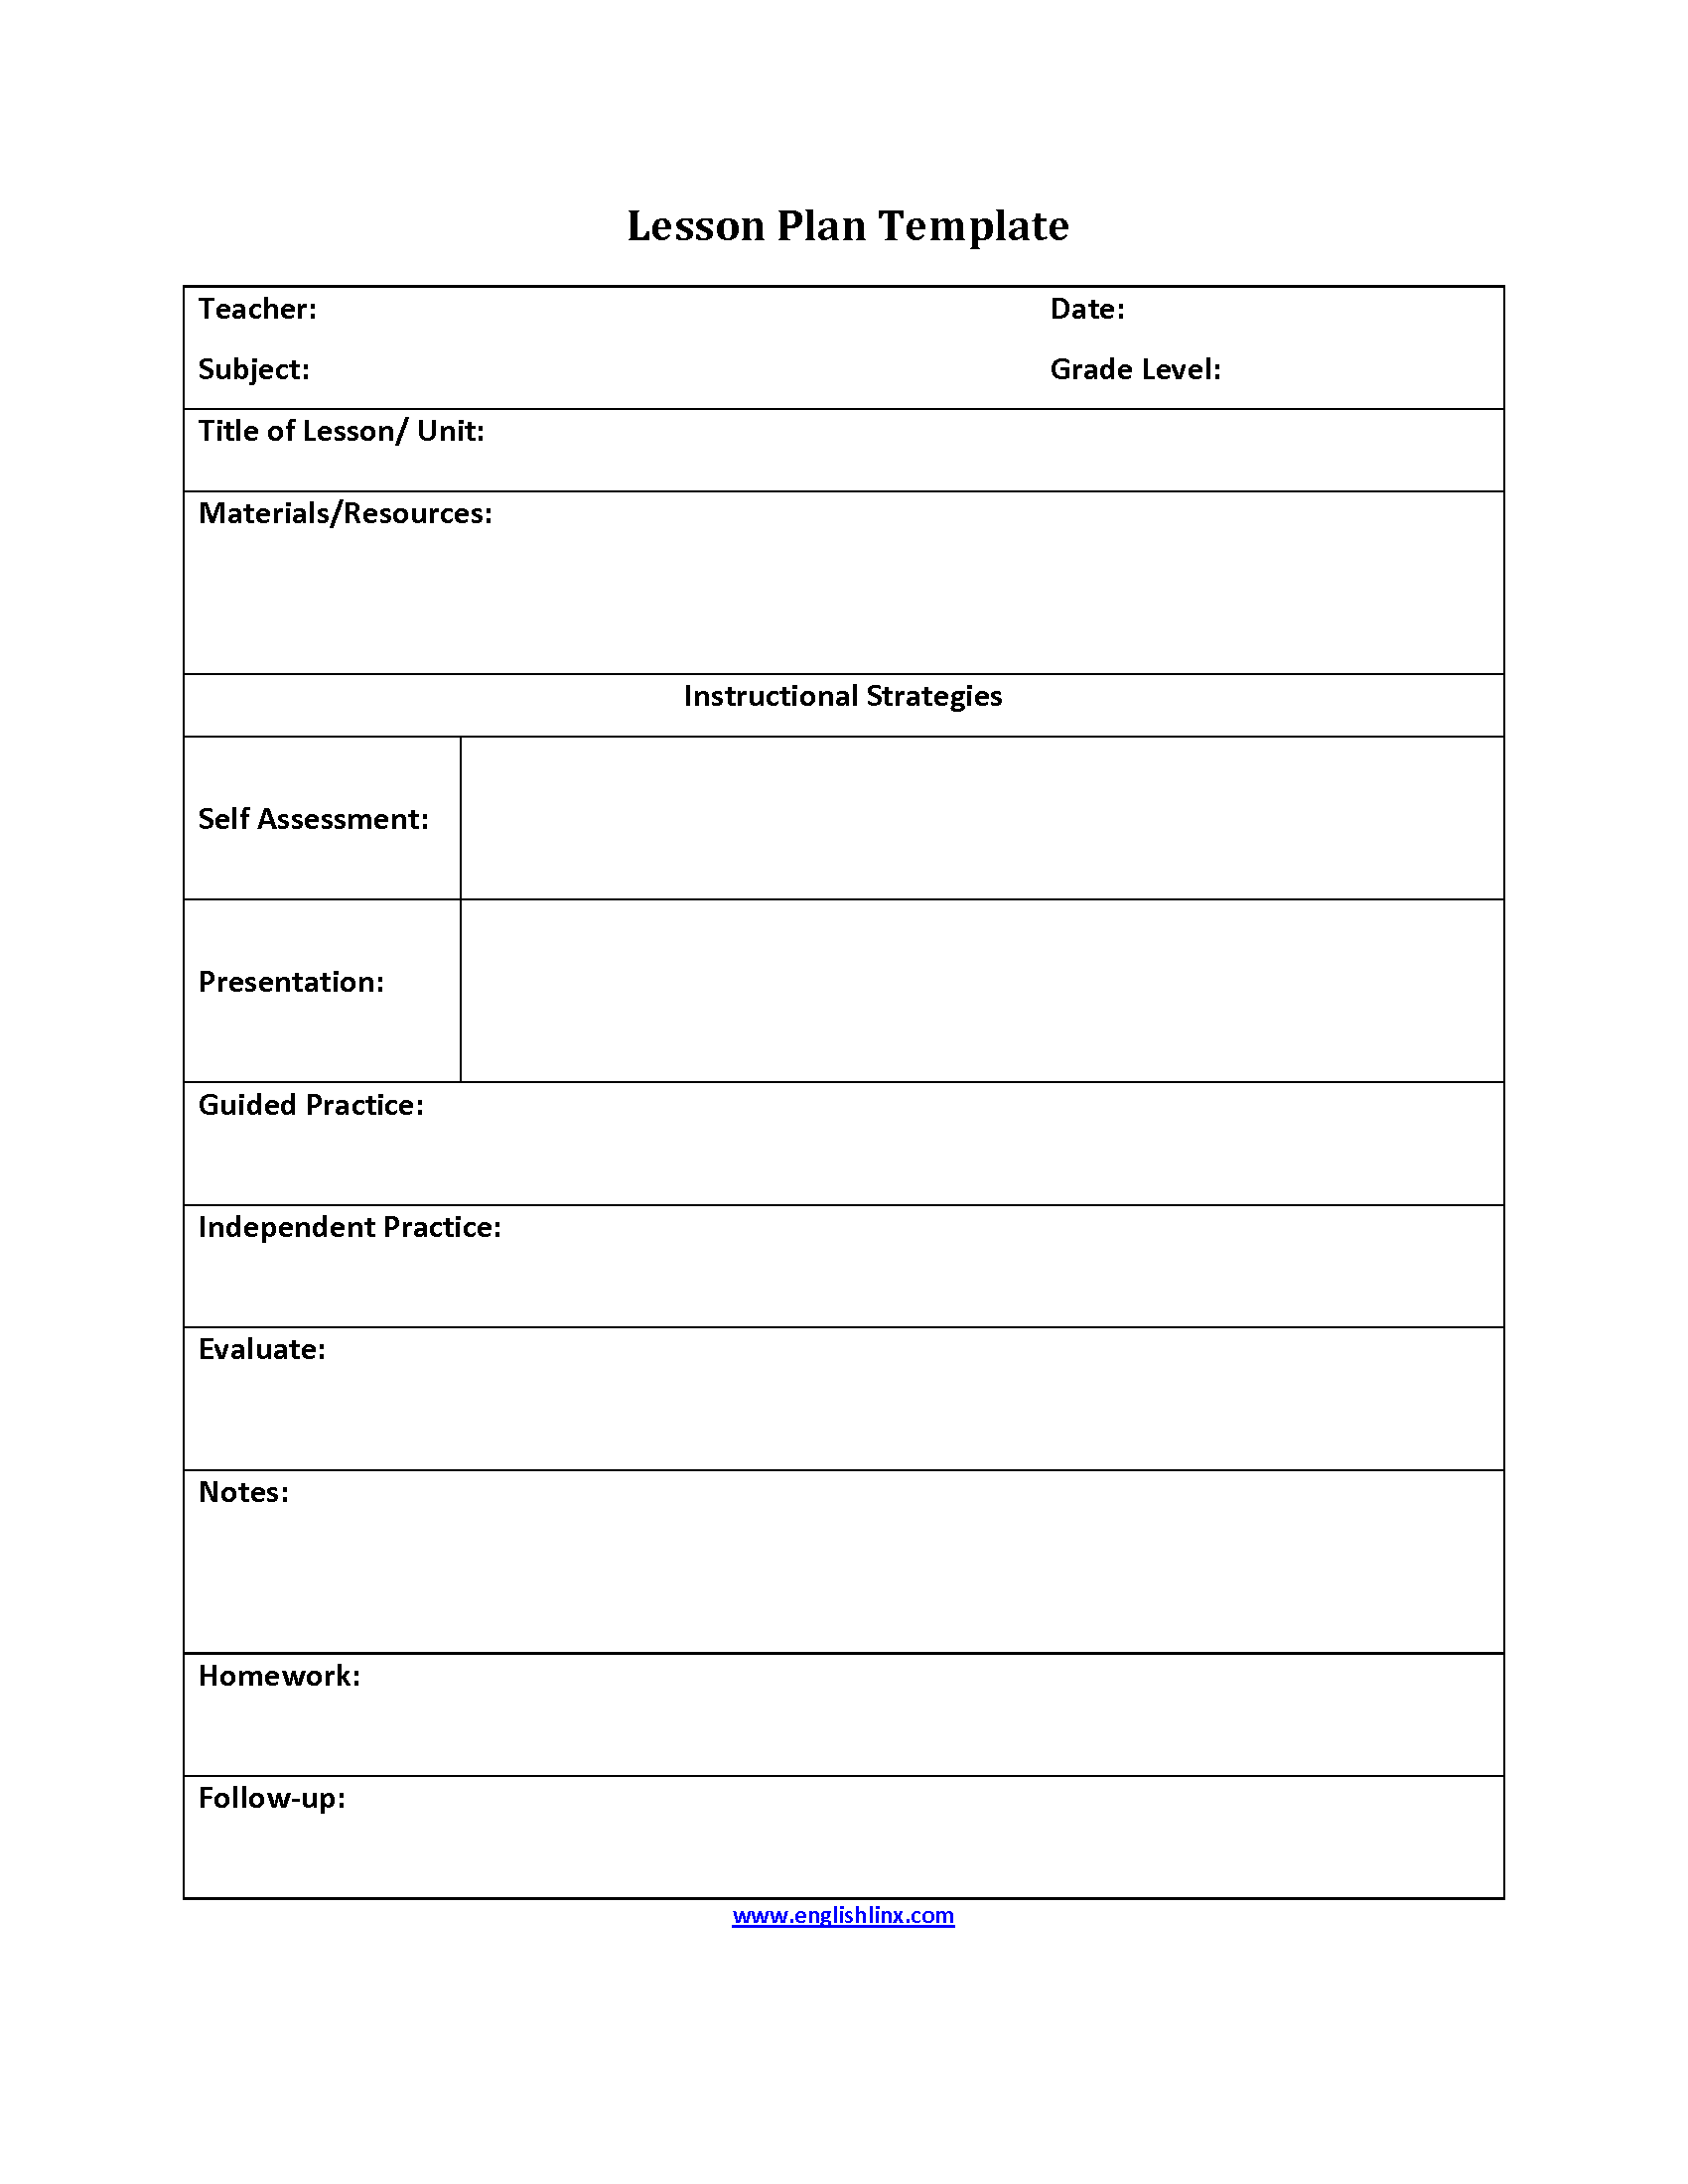 Self Assessment Lesson Plan Template